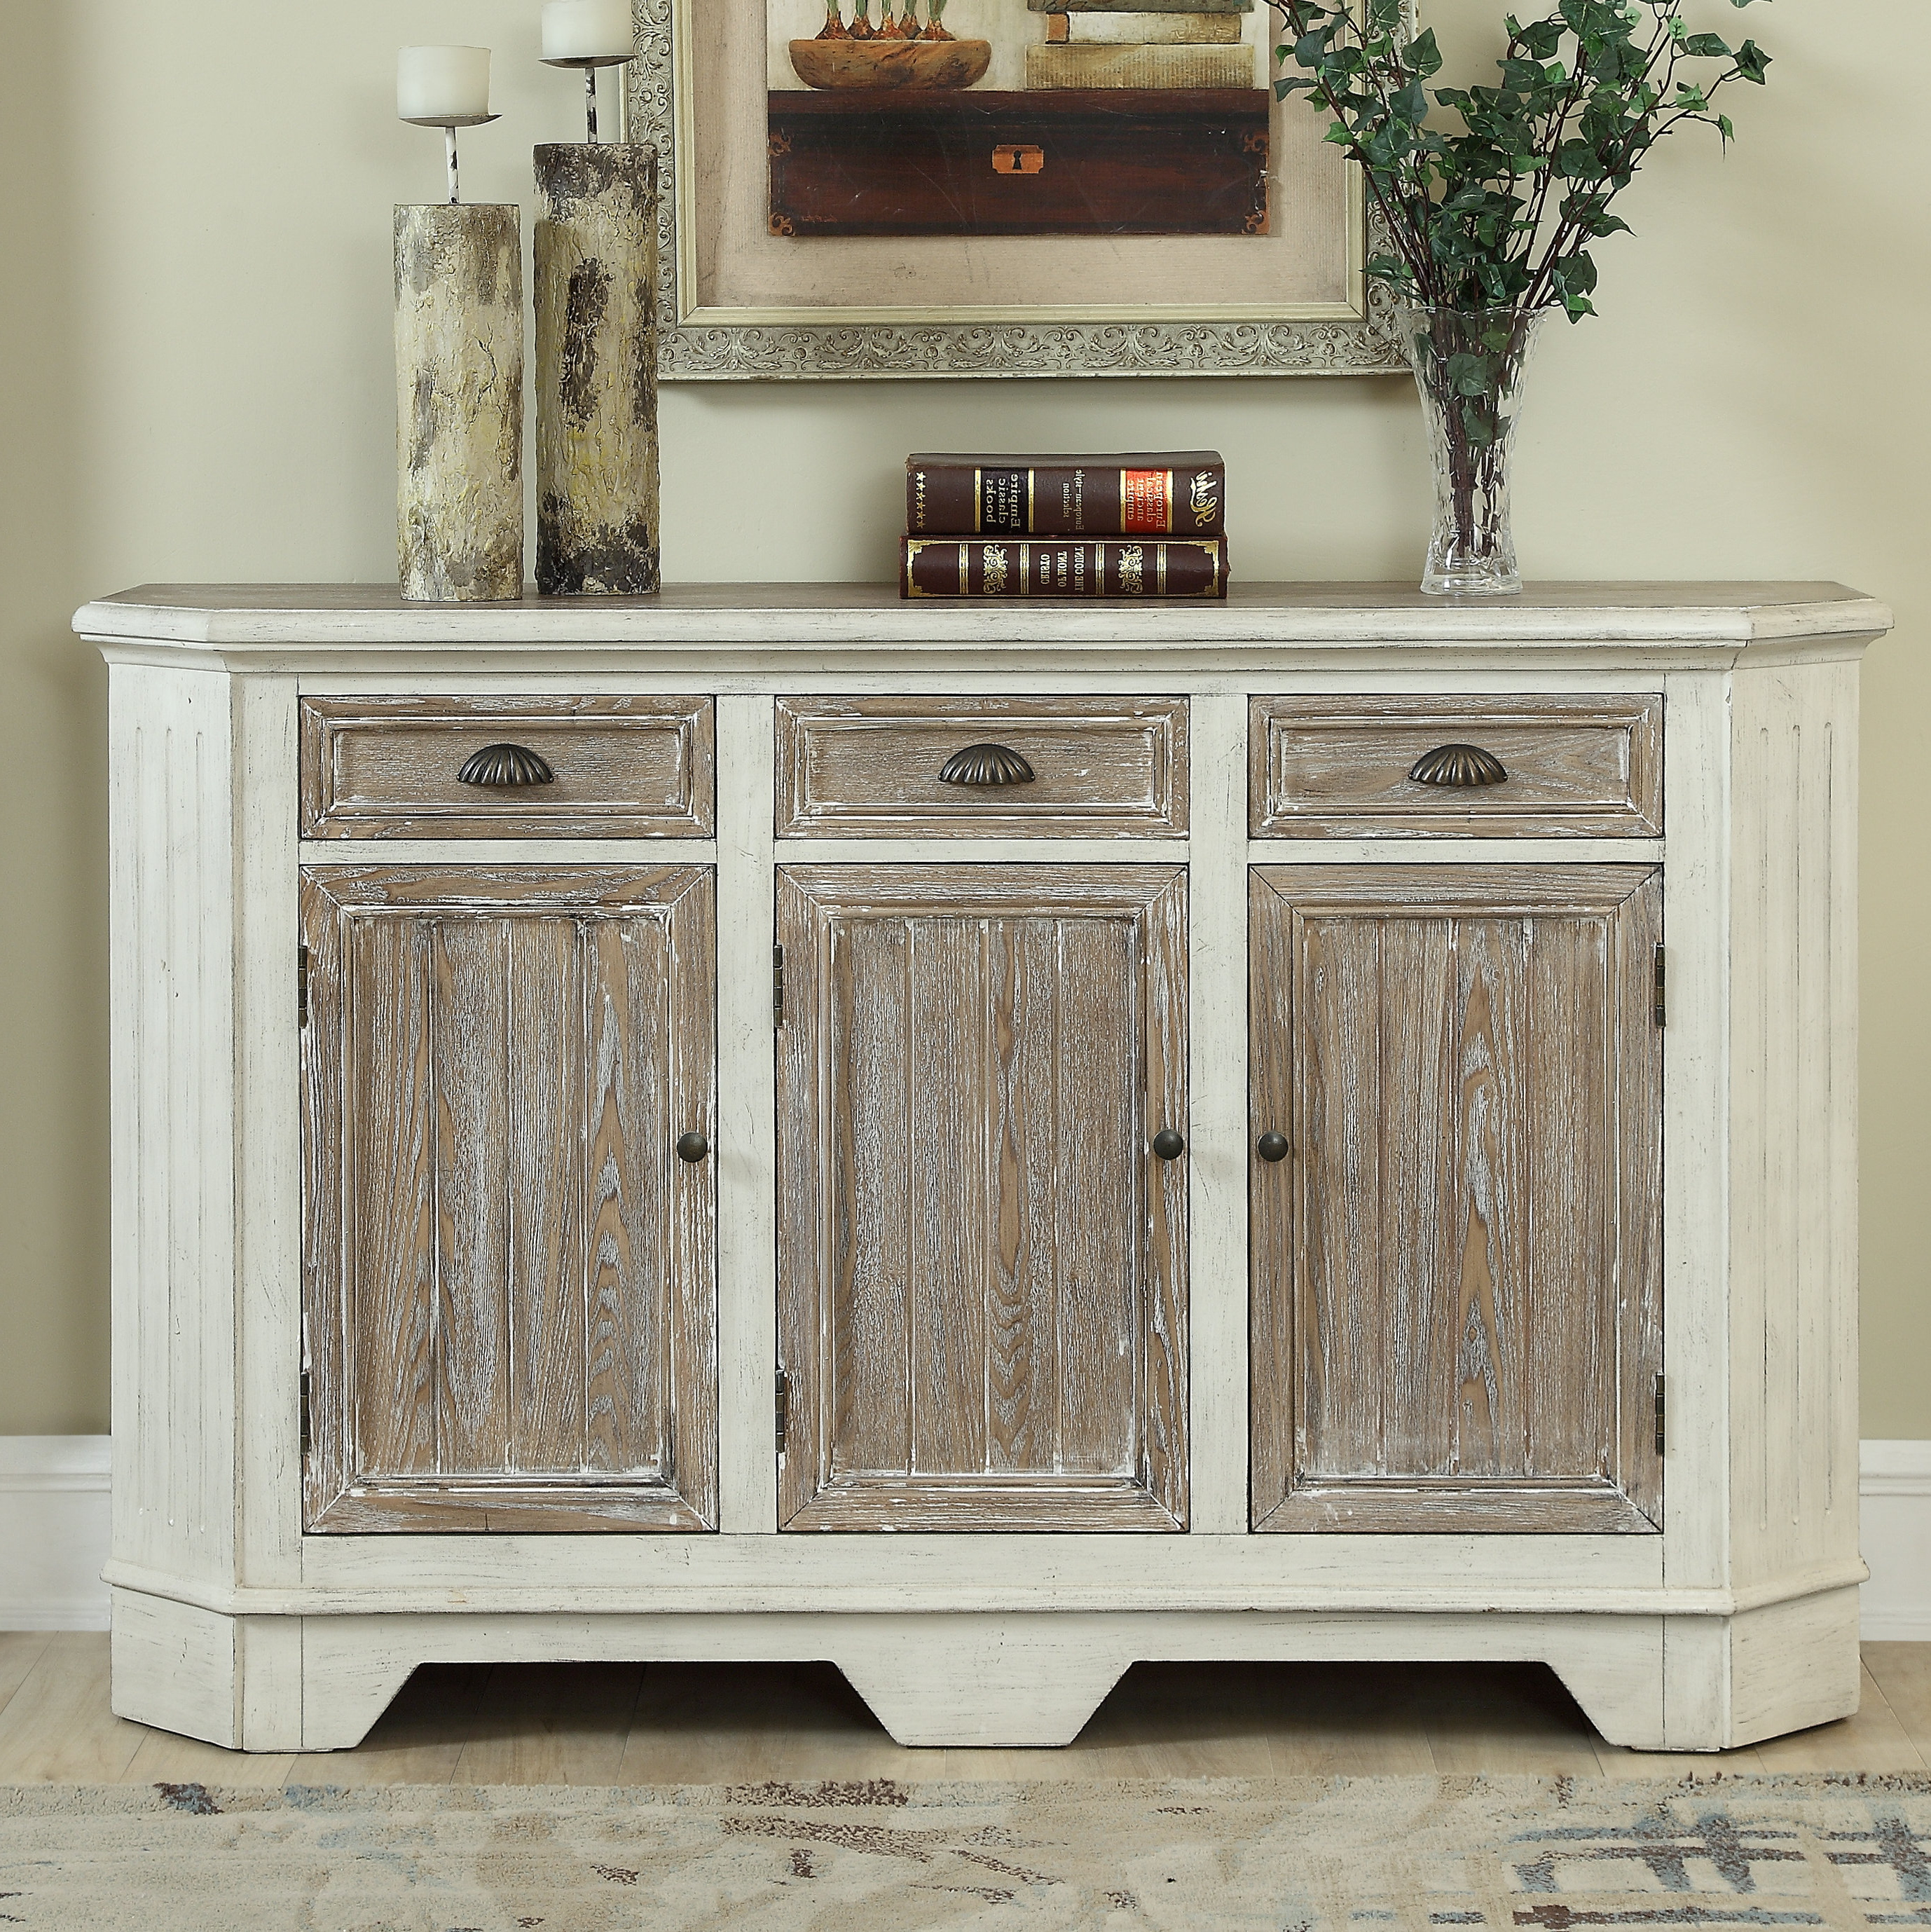 4 Door 3 Drawer White Wash Sideboards Pertaining To Most Current Highland Dunes Funkhouser 3 Door 3 Drawer Sideboard & Reviews (Gallery 15 of 20)